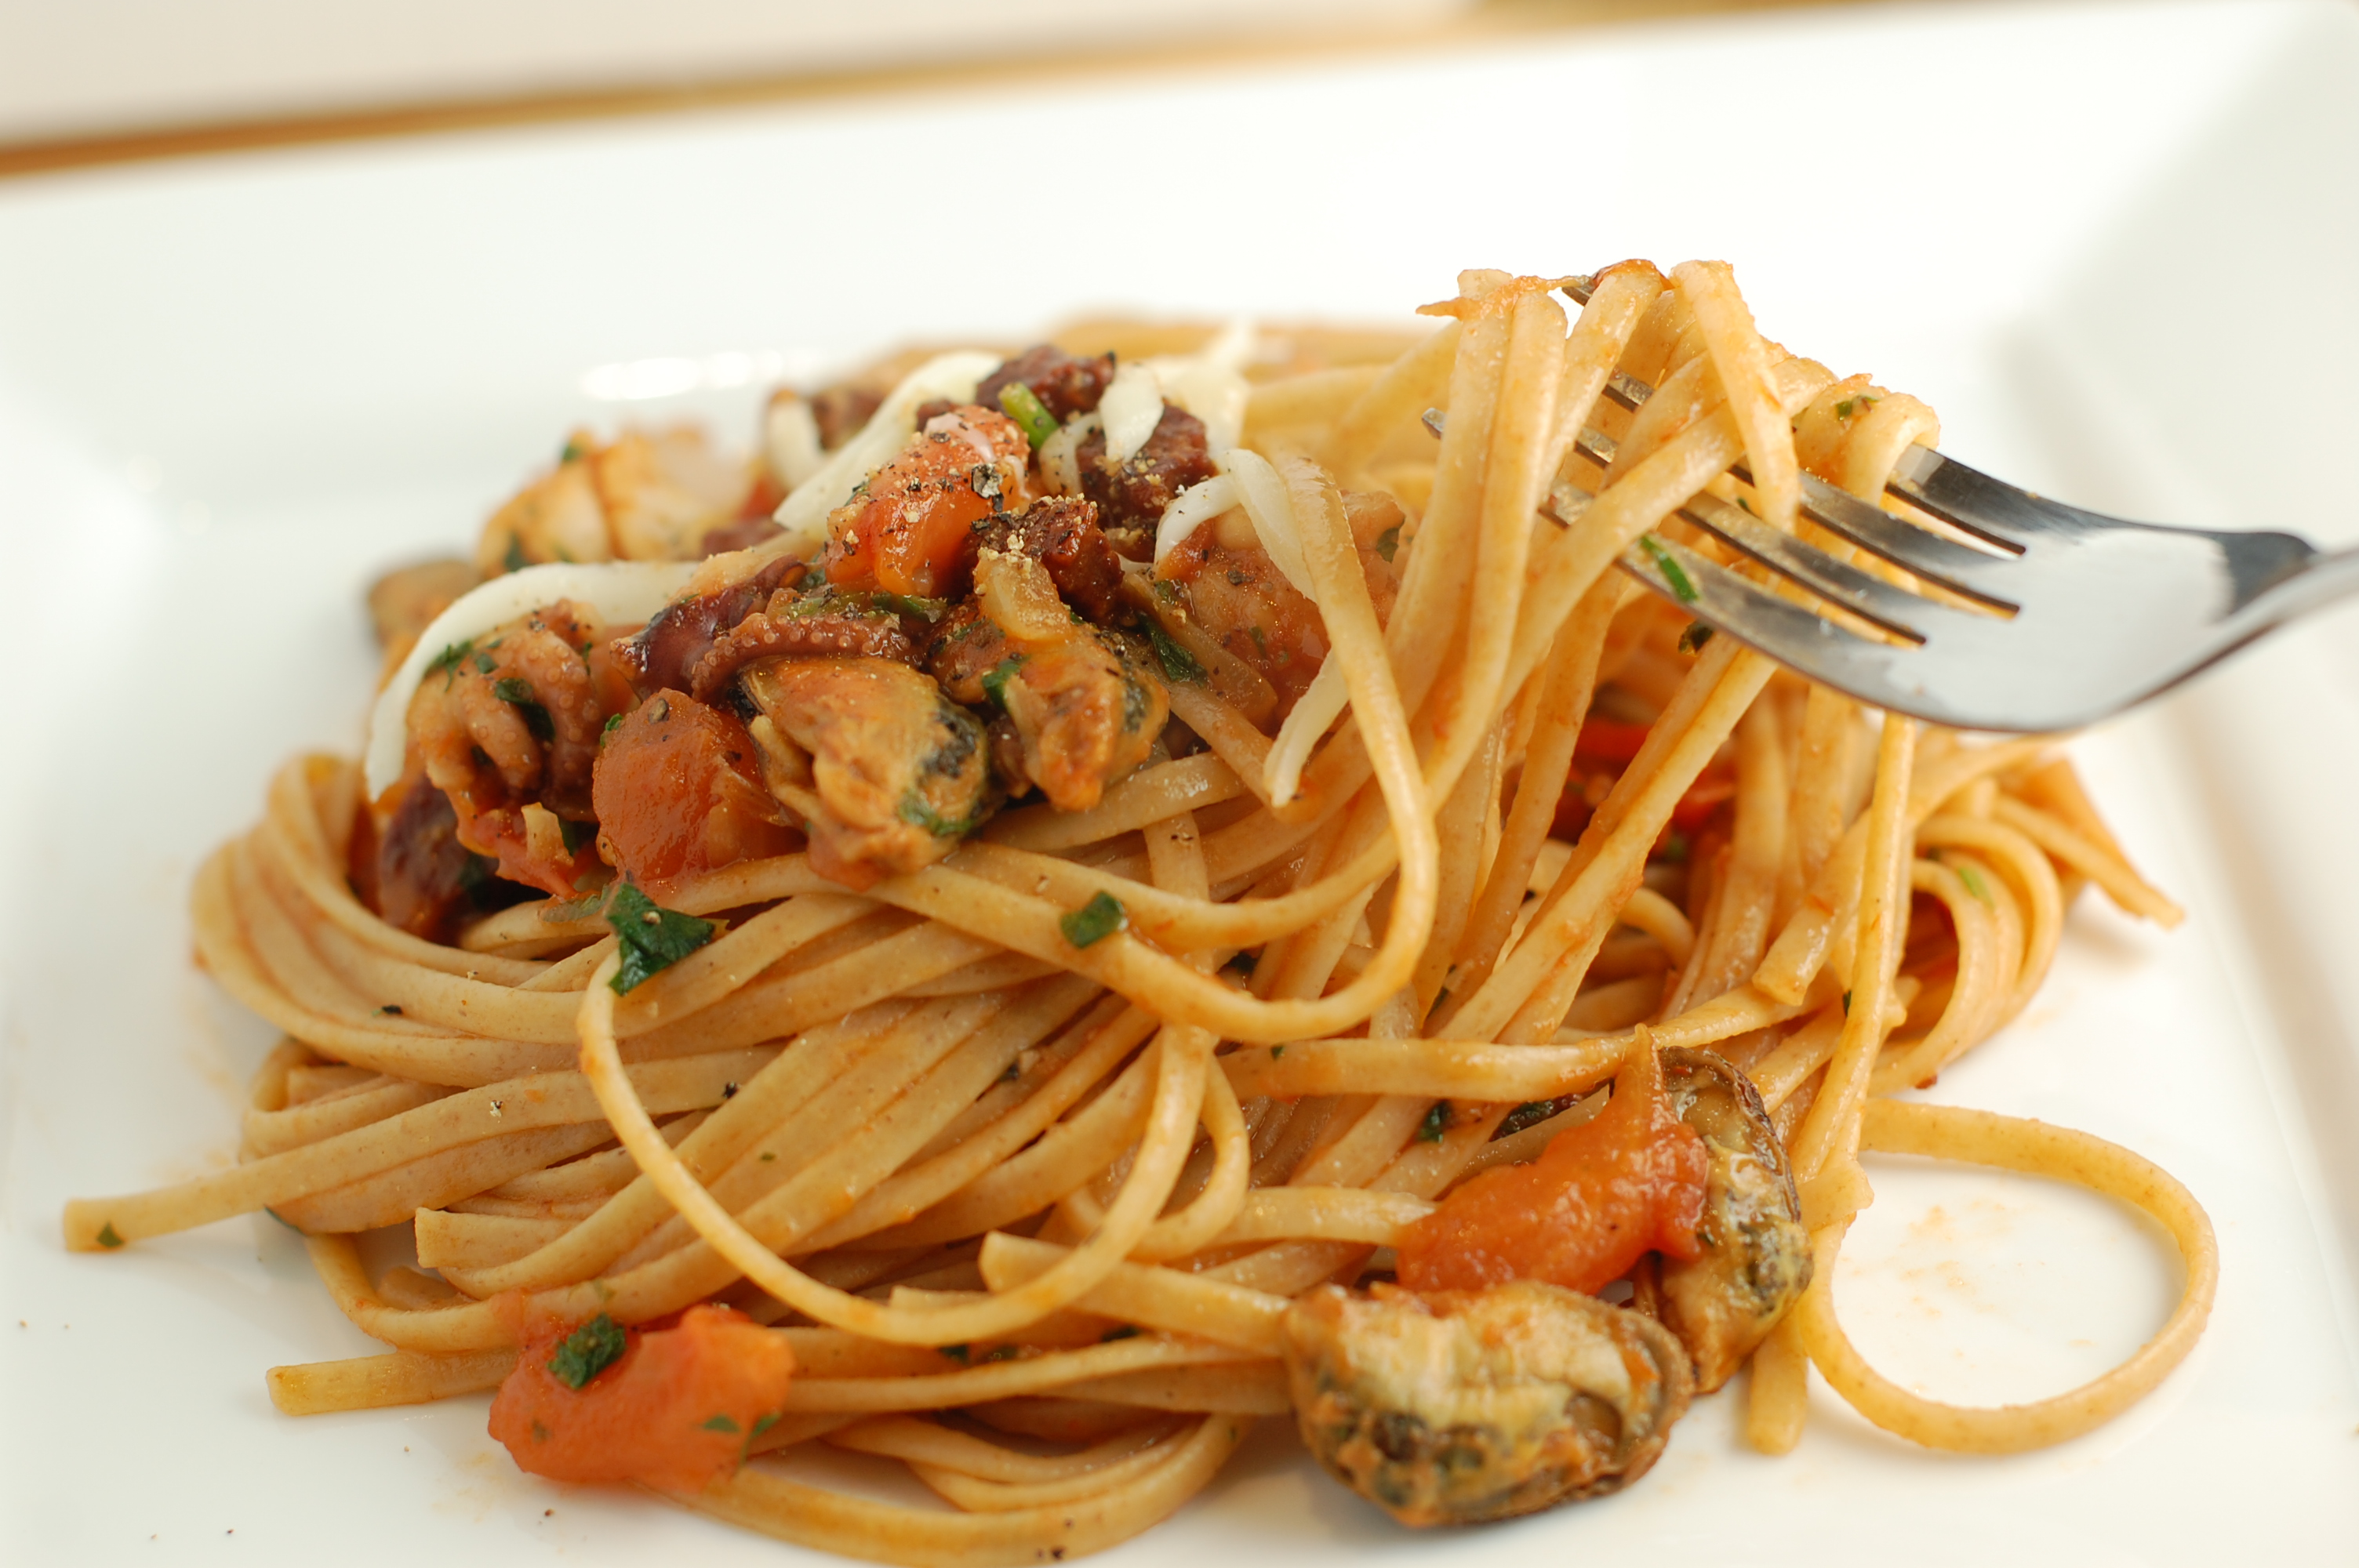 Seafood pasta with Tomato